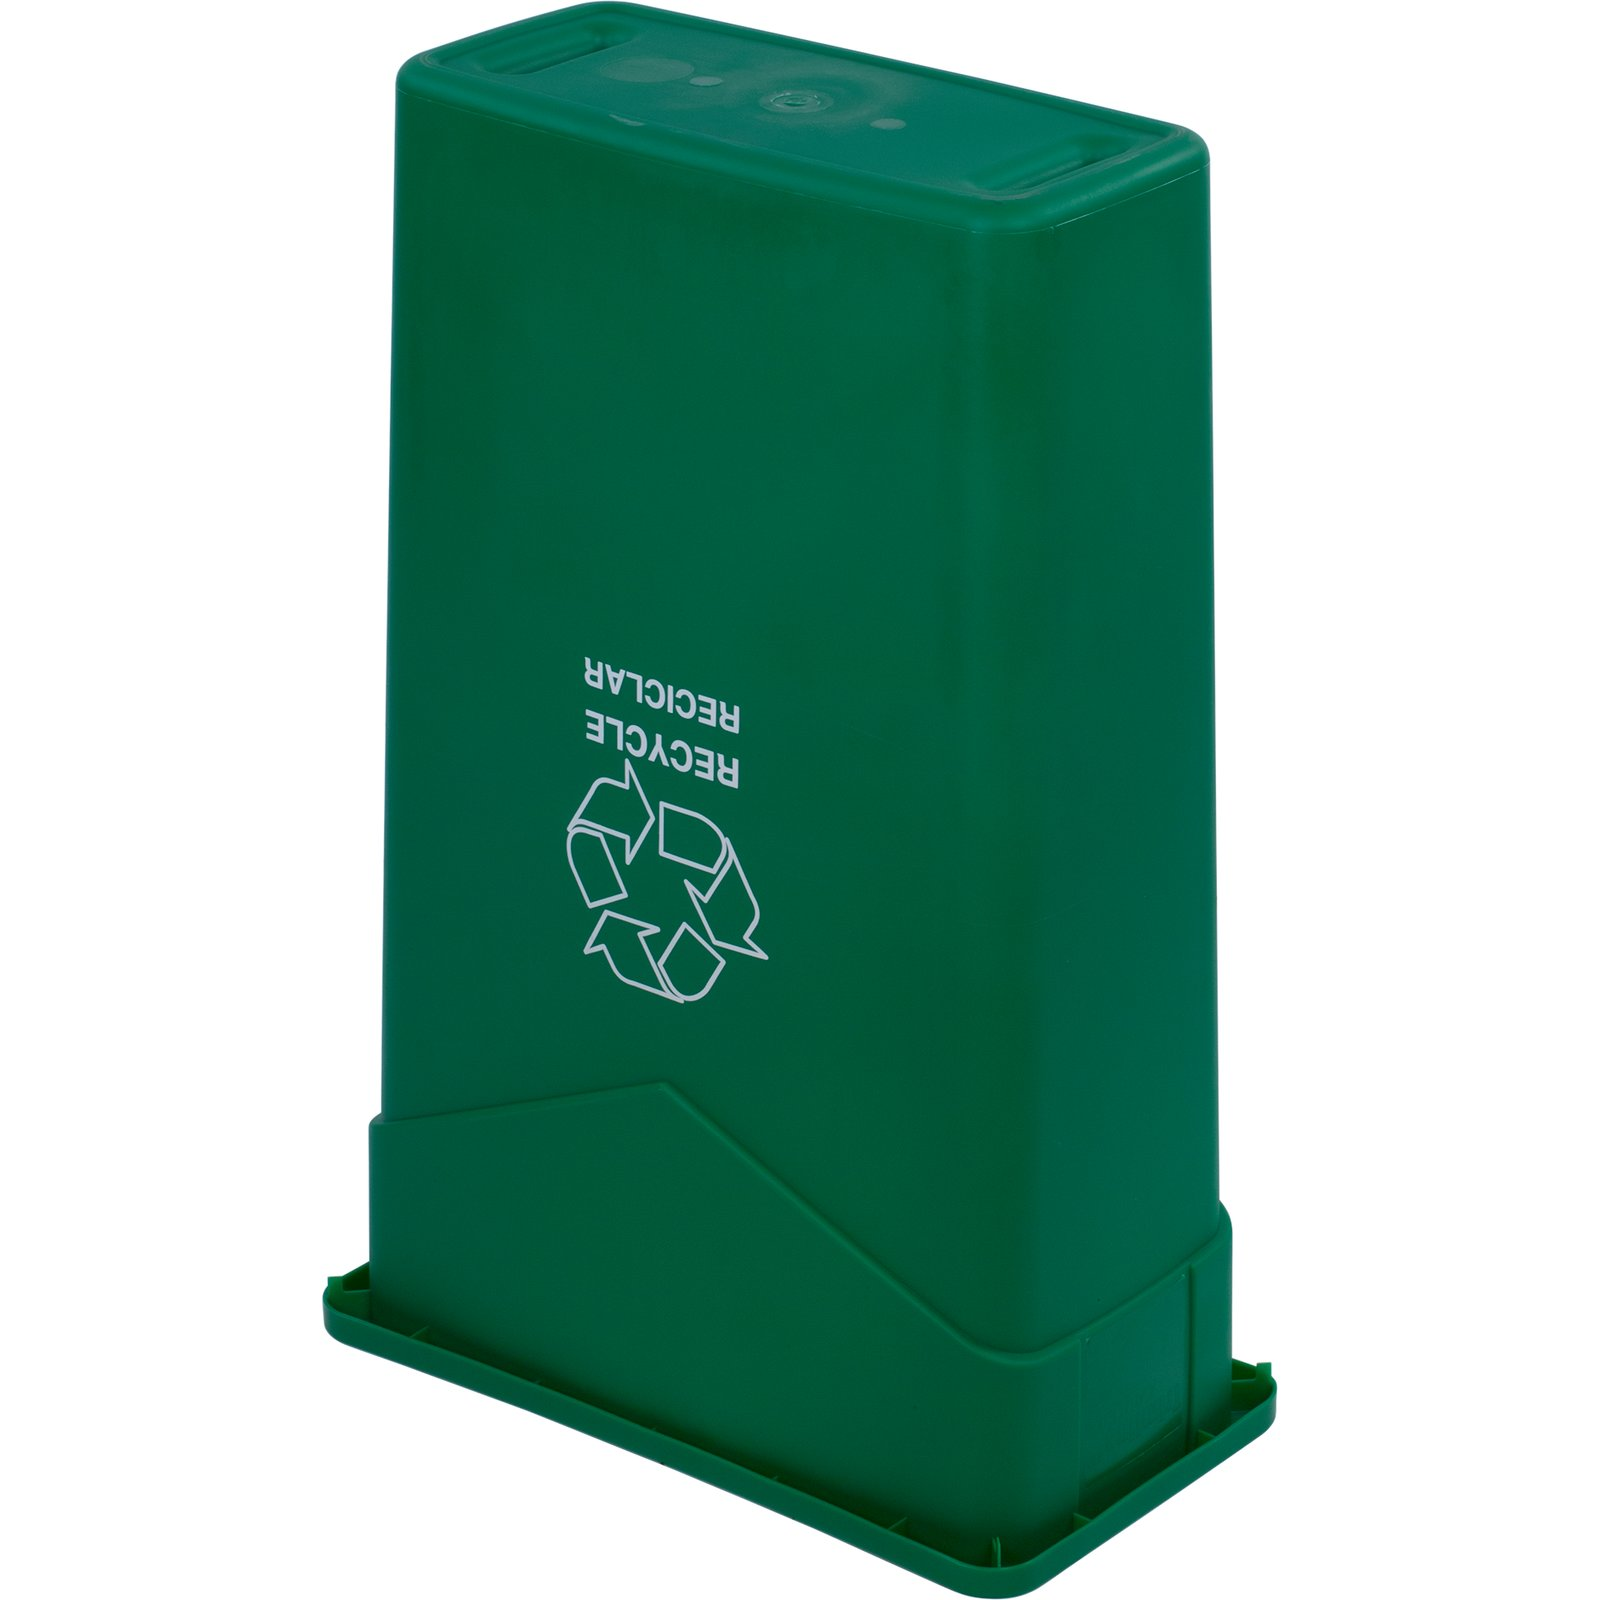 342023rec09 trimline rectangle recycle waste container 23 gallon green carlisle - Garden waste containers ...